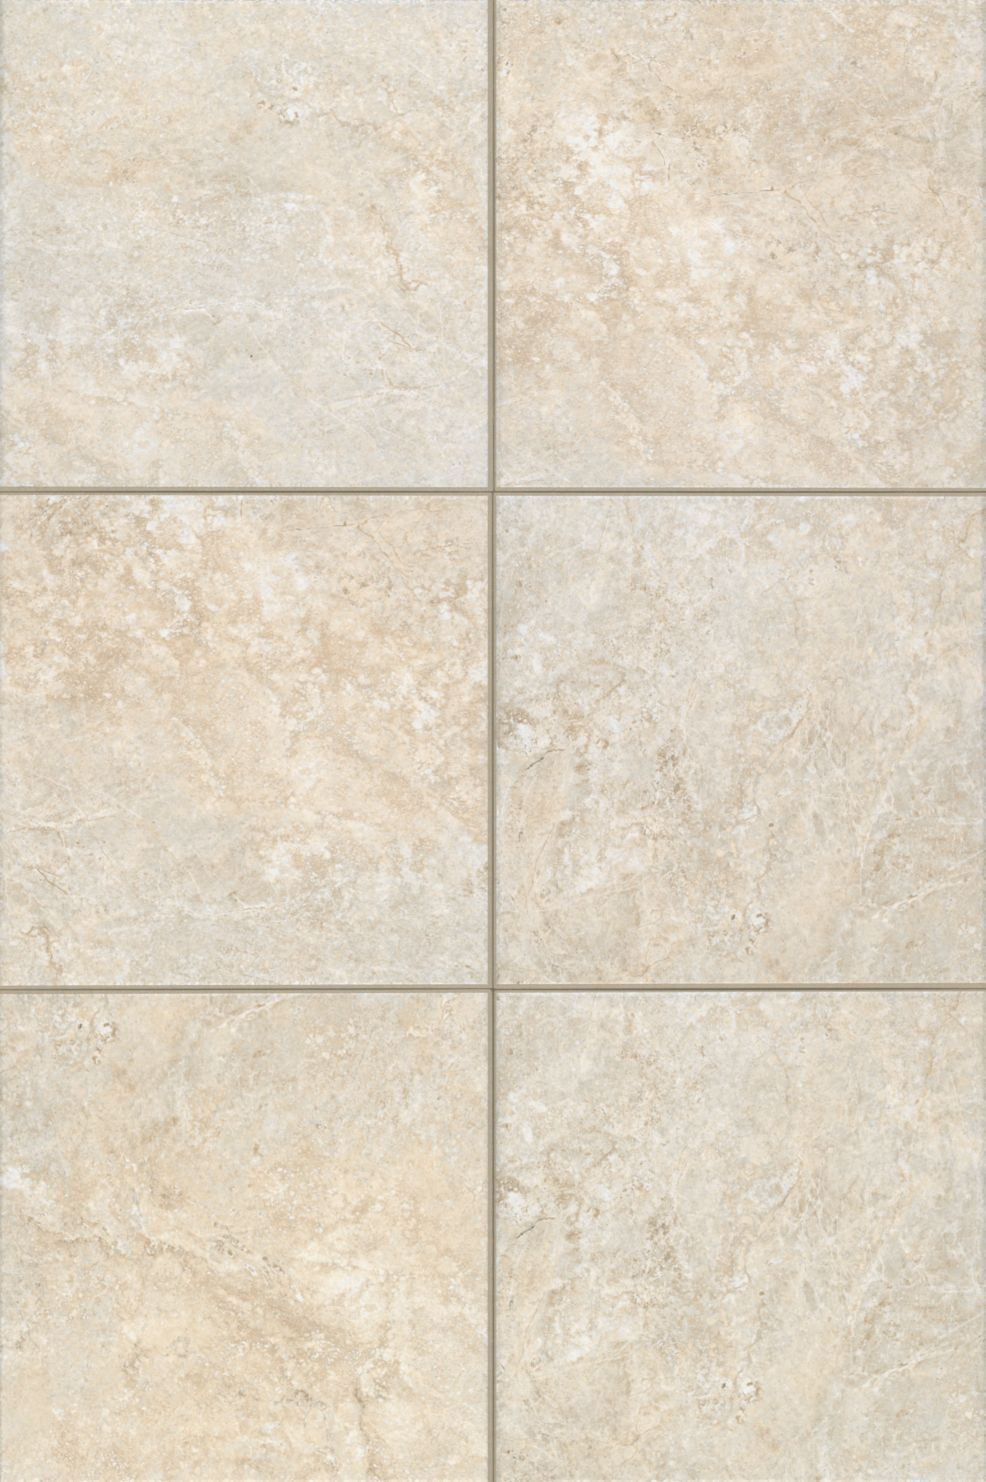 Mclean Floor Tile Chiara Cream